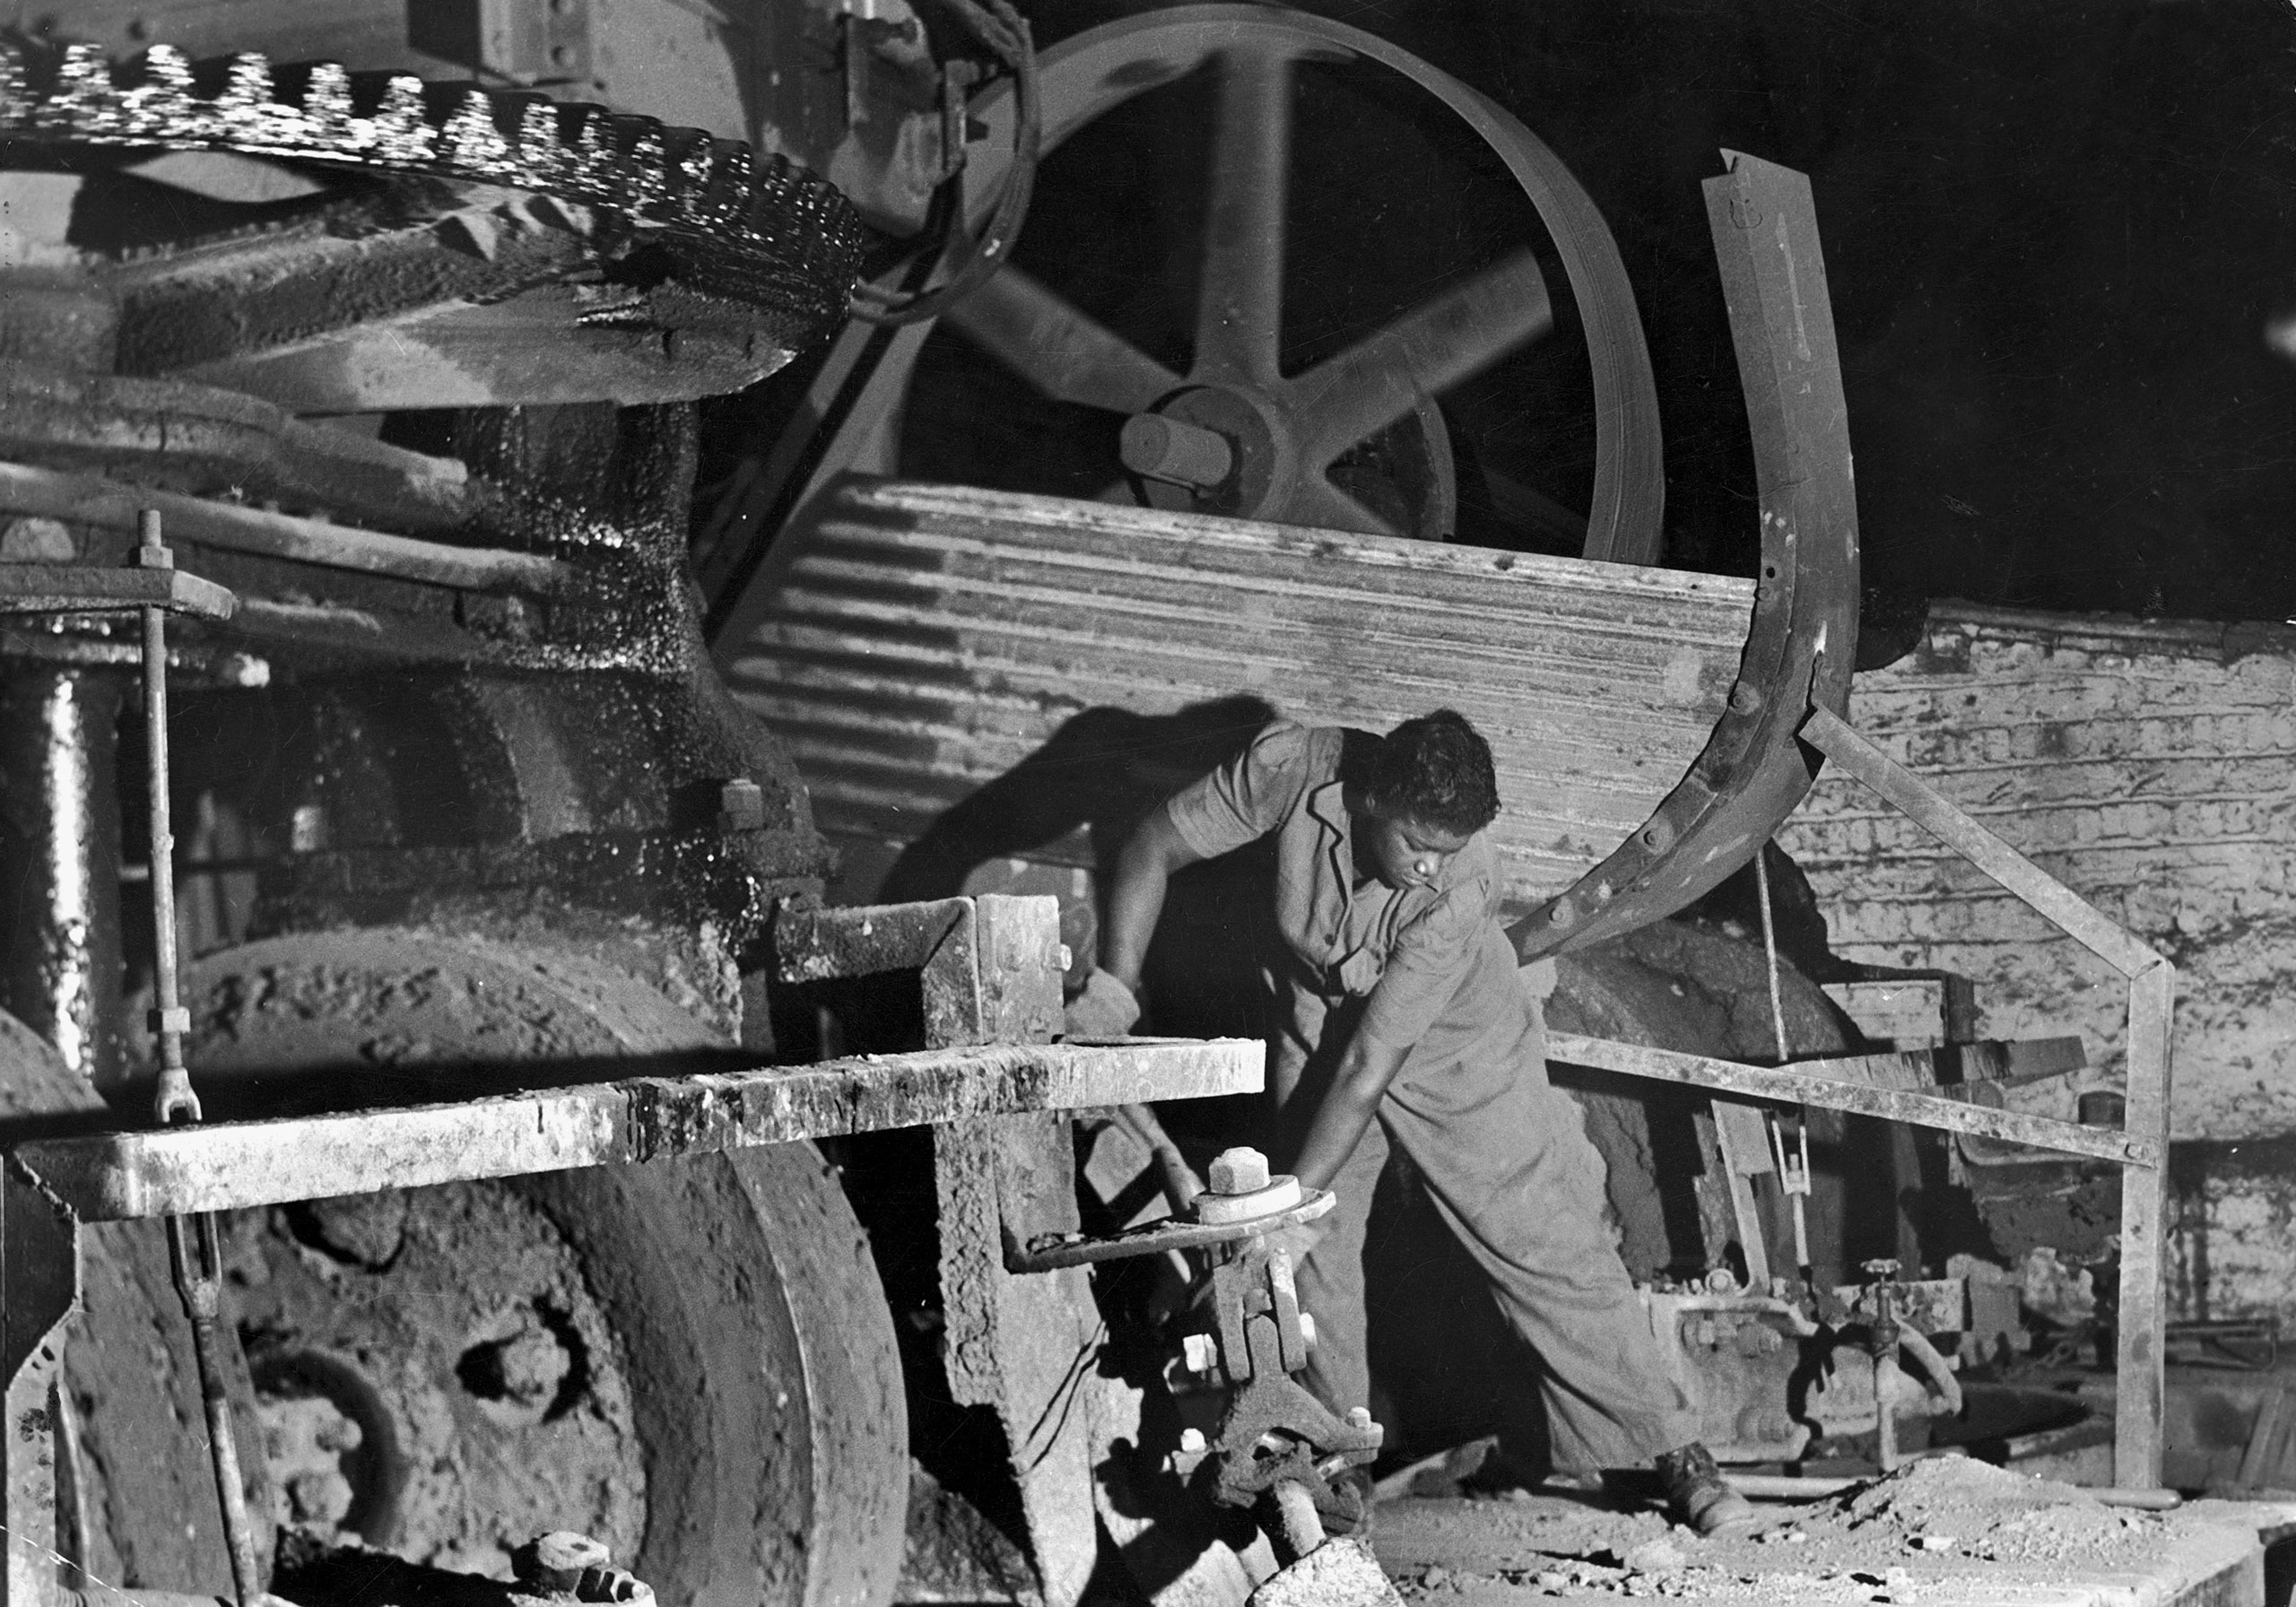 <b>Caption from LIFE.</b> Pan Man' at Gary Works is Mrs. Rosalie Ivy, a husky Negro laborer. She is mixing a special mud used to seal the casting hole through which molten iron flows from a blast furnace.